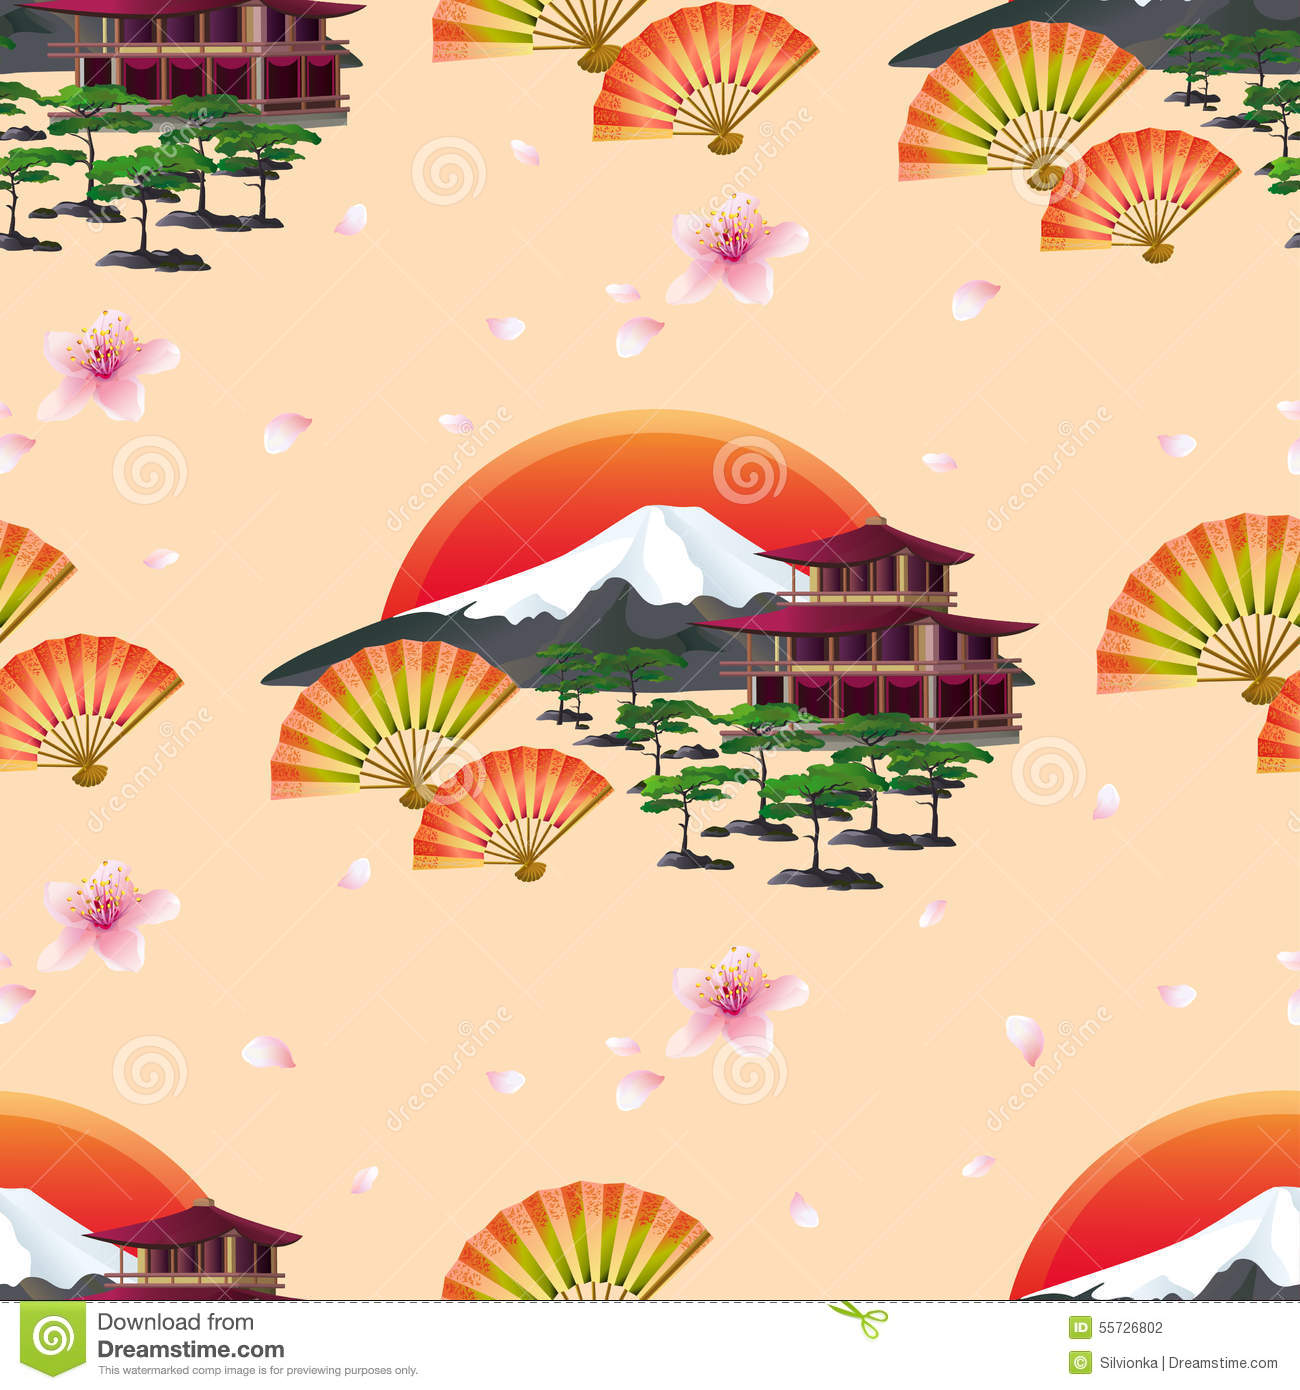 ... fans and traditional japanese house. Floral spring wallpaper. Graphic